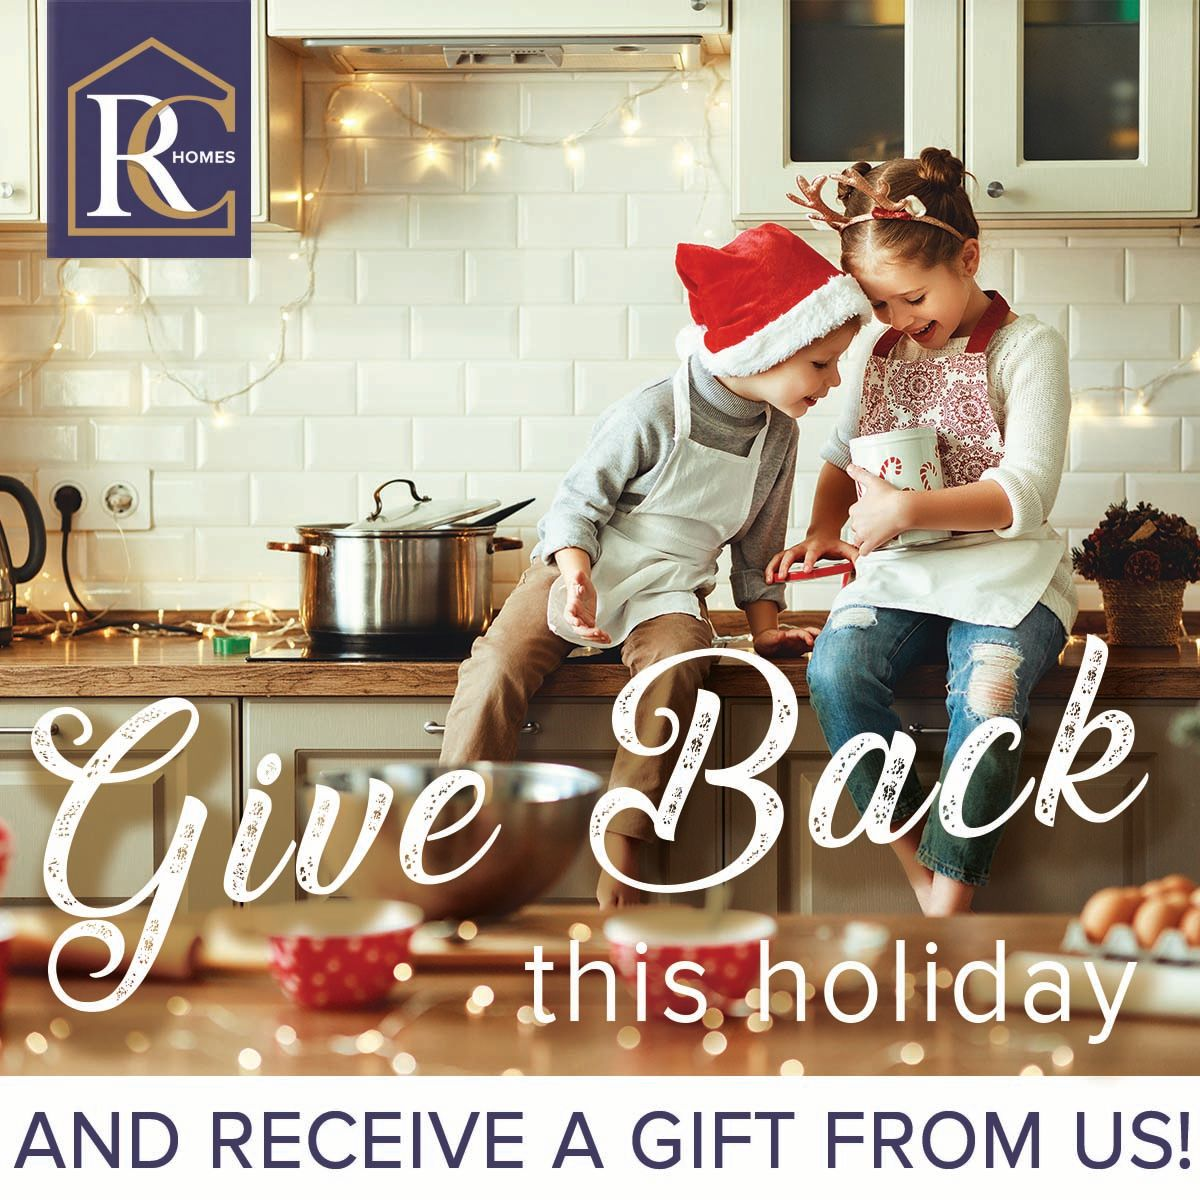 """Kids wearing a santa claus hat and reindeer antlers, baking cookies, and sitting on a kitchen counter with text saying, """"Give Back this holiday, and receive a gift from us!"""""""